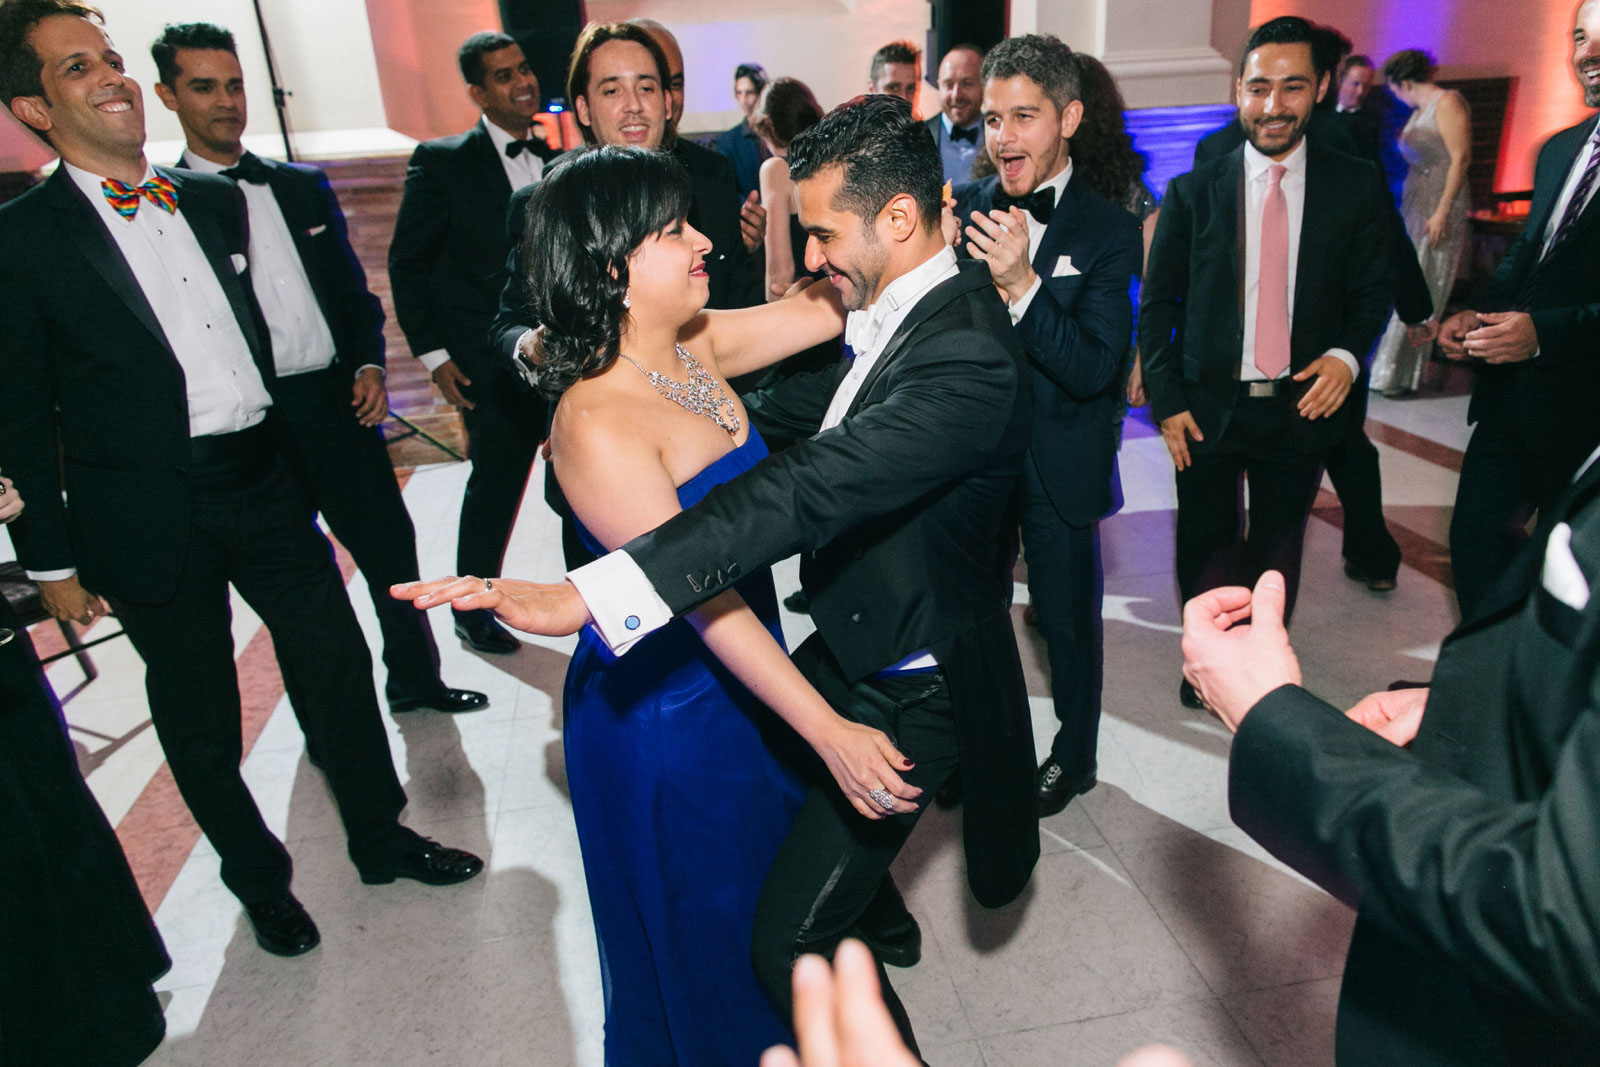 Groom dancing with friends on the dance floor at Boston Public library wedding reception